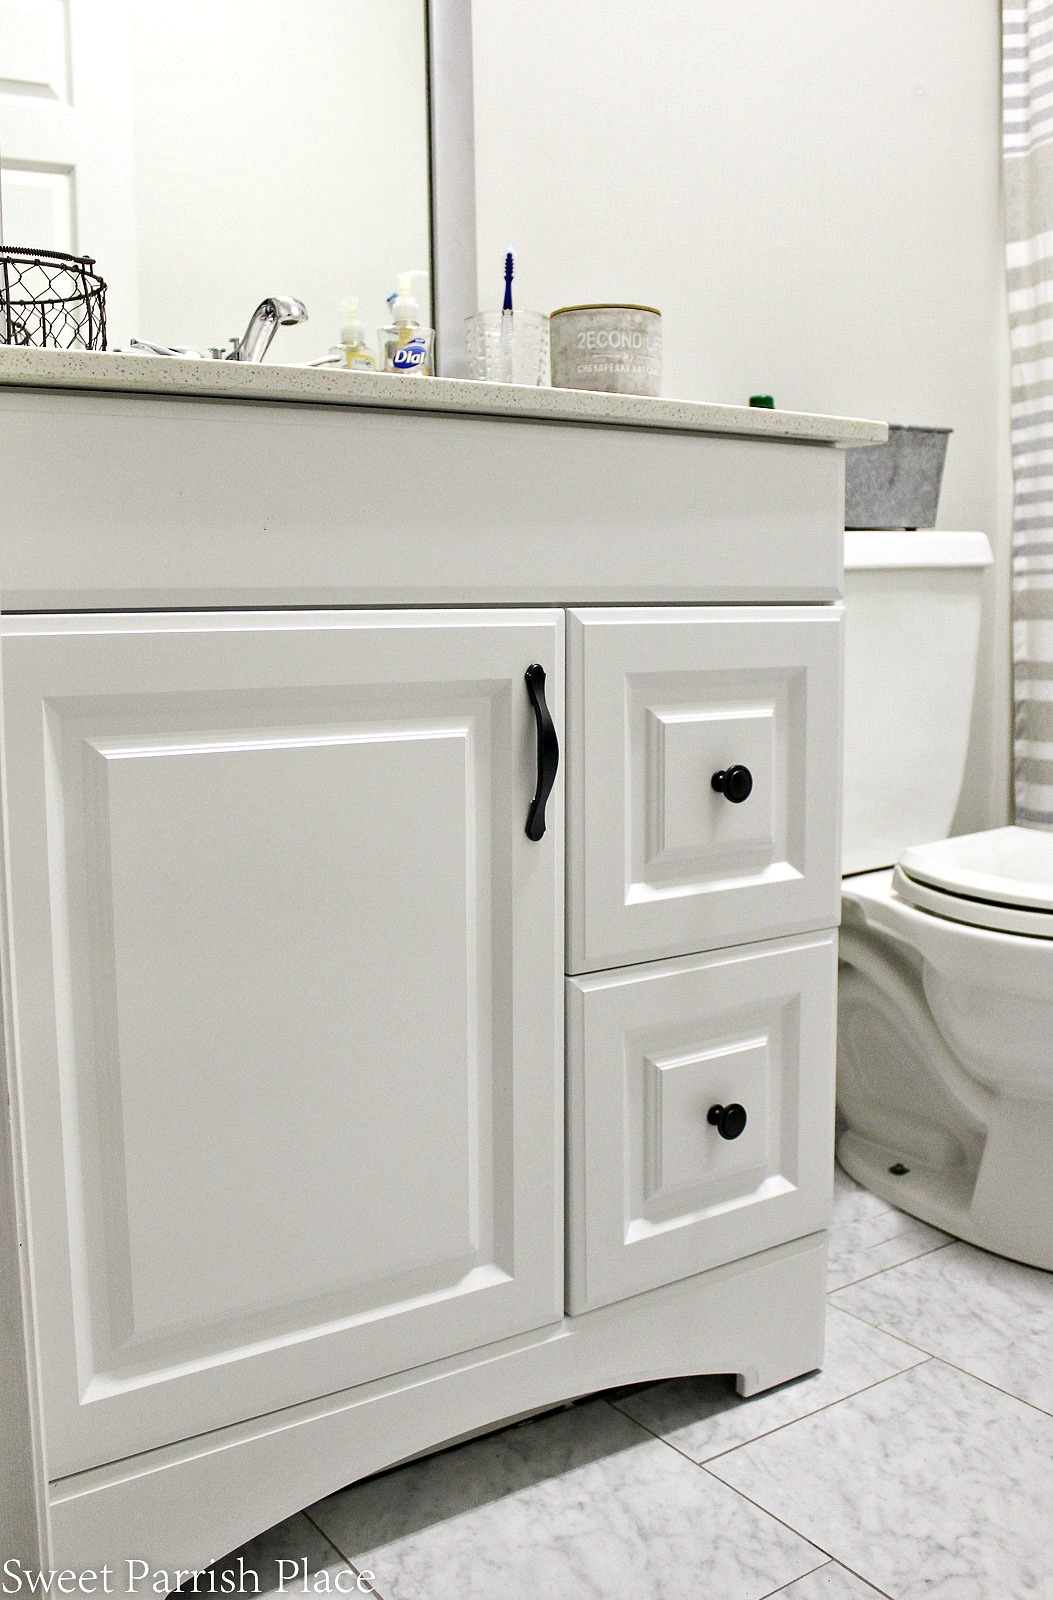 Week 2 of the ORC and our downstairs bathroom makeover with a new sink and new paint color